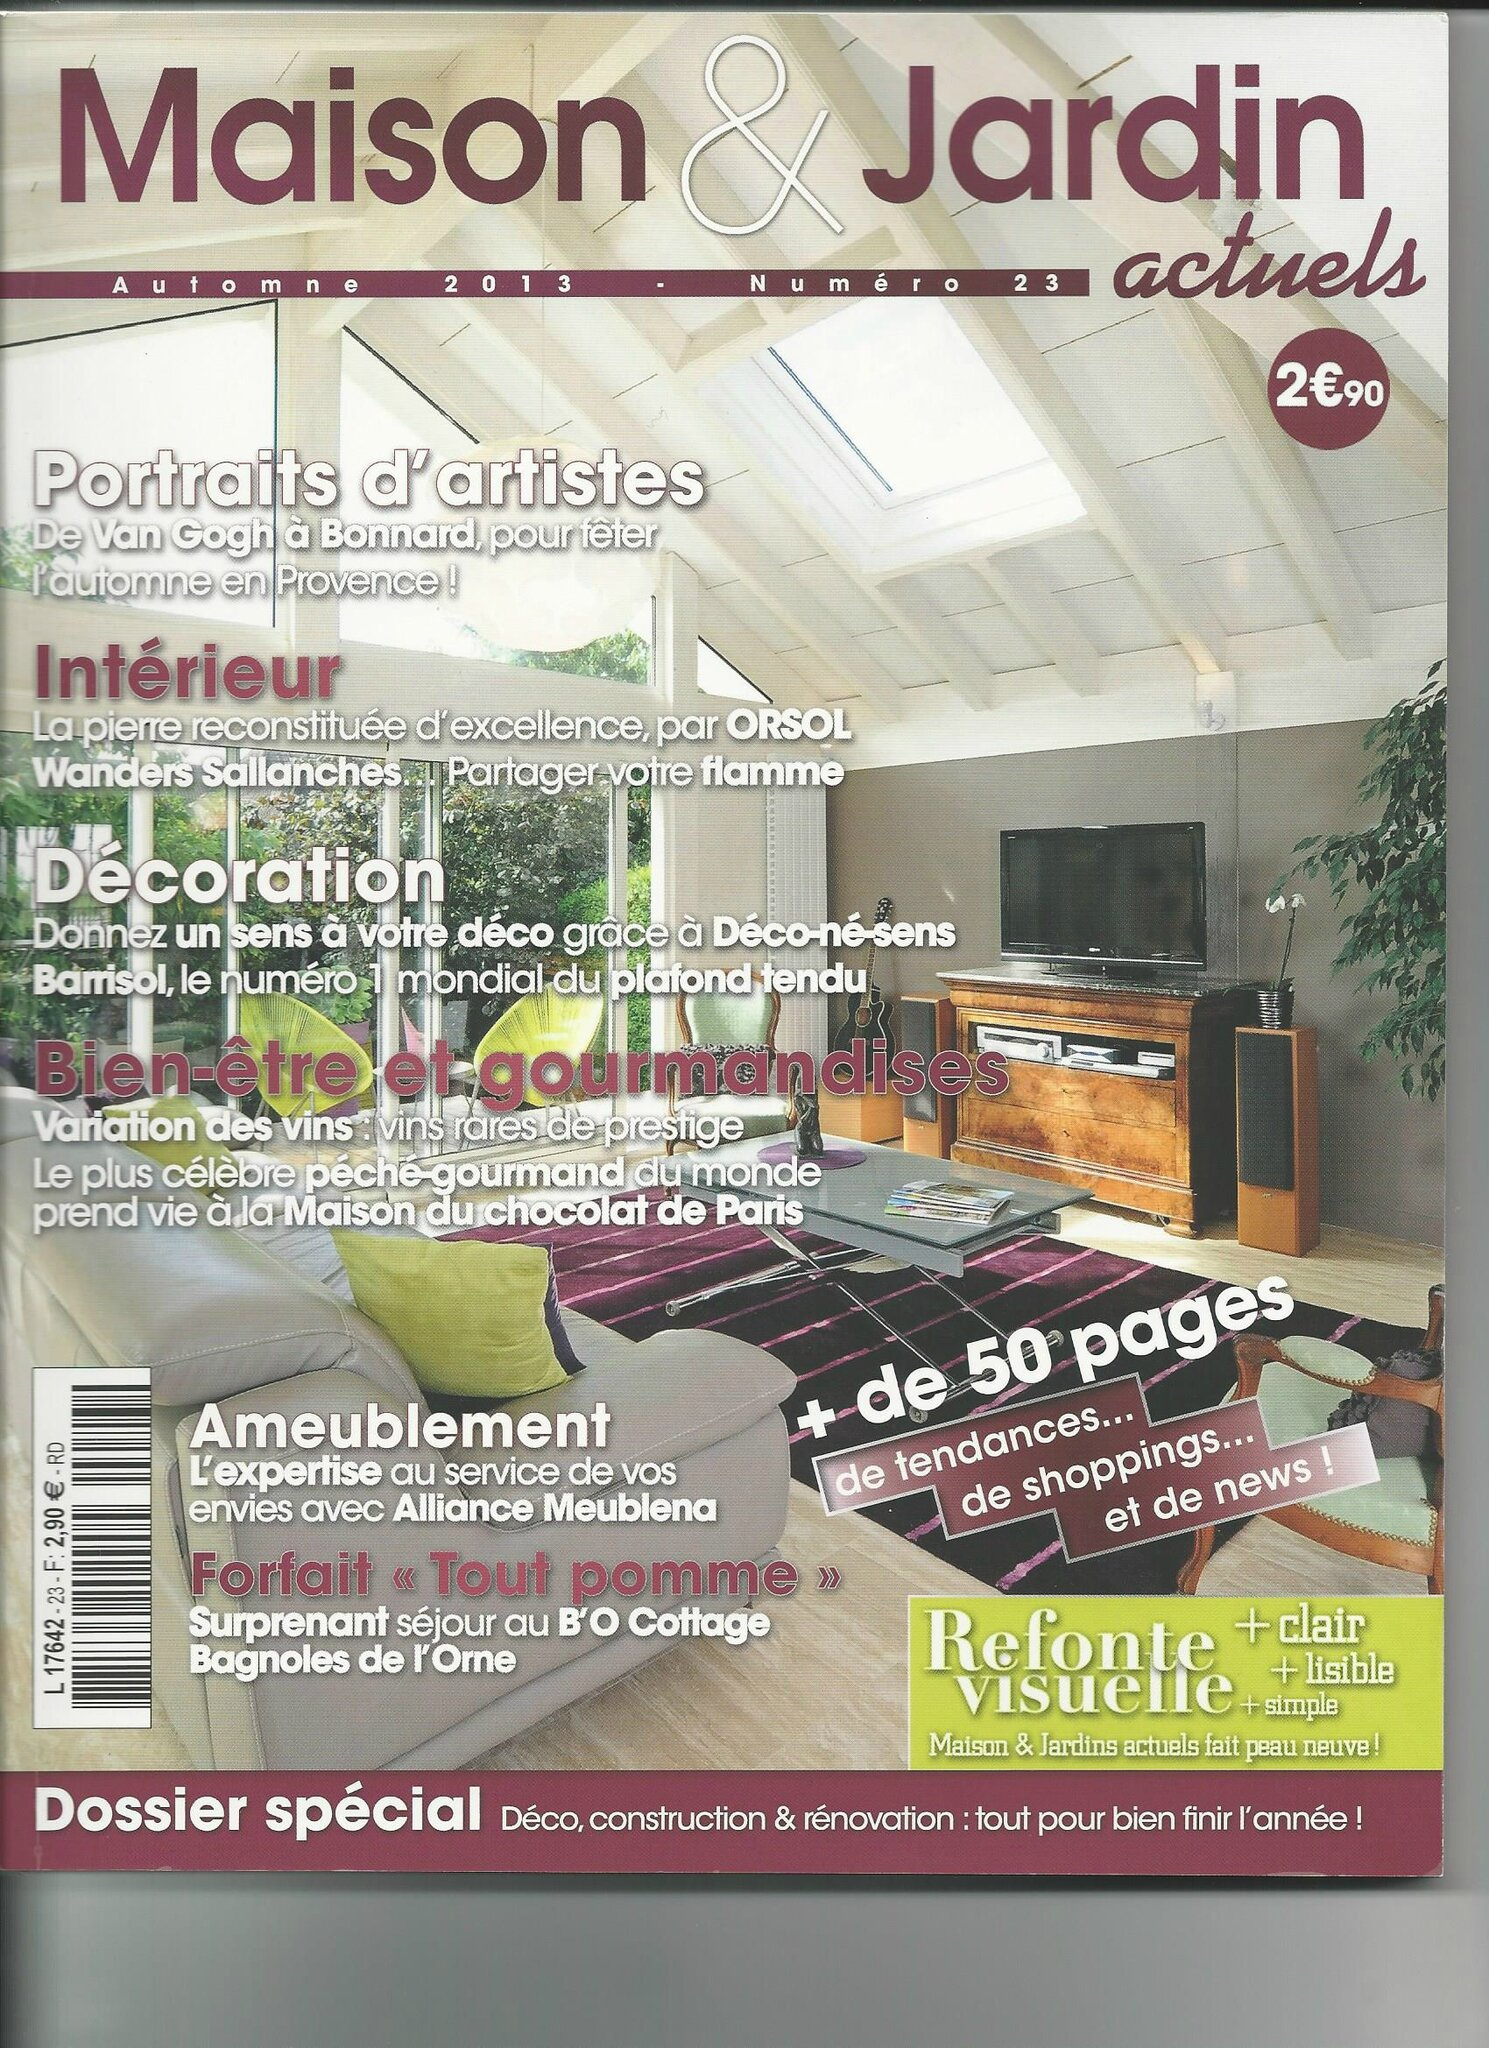 le magazine maison et jardin actuels parle de mes. Black Bedroom Furniture Sets. Home Design Ideas